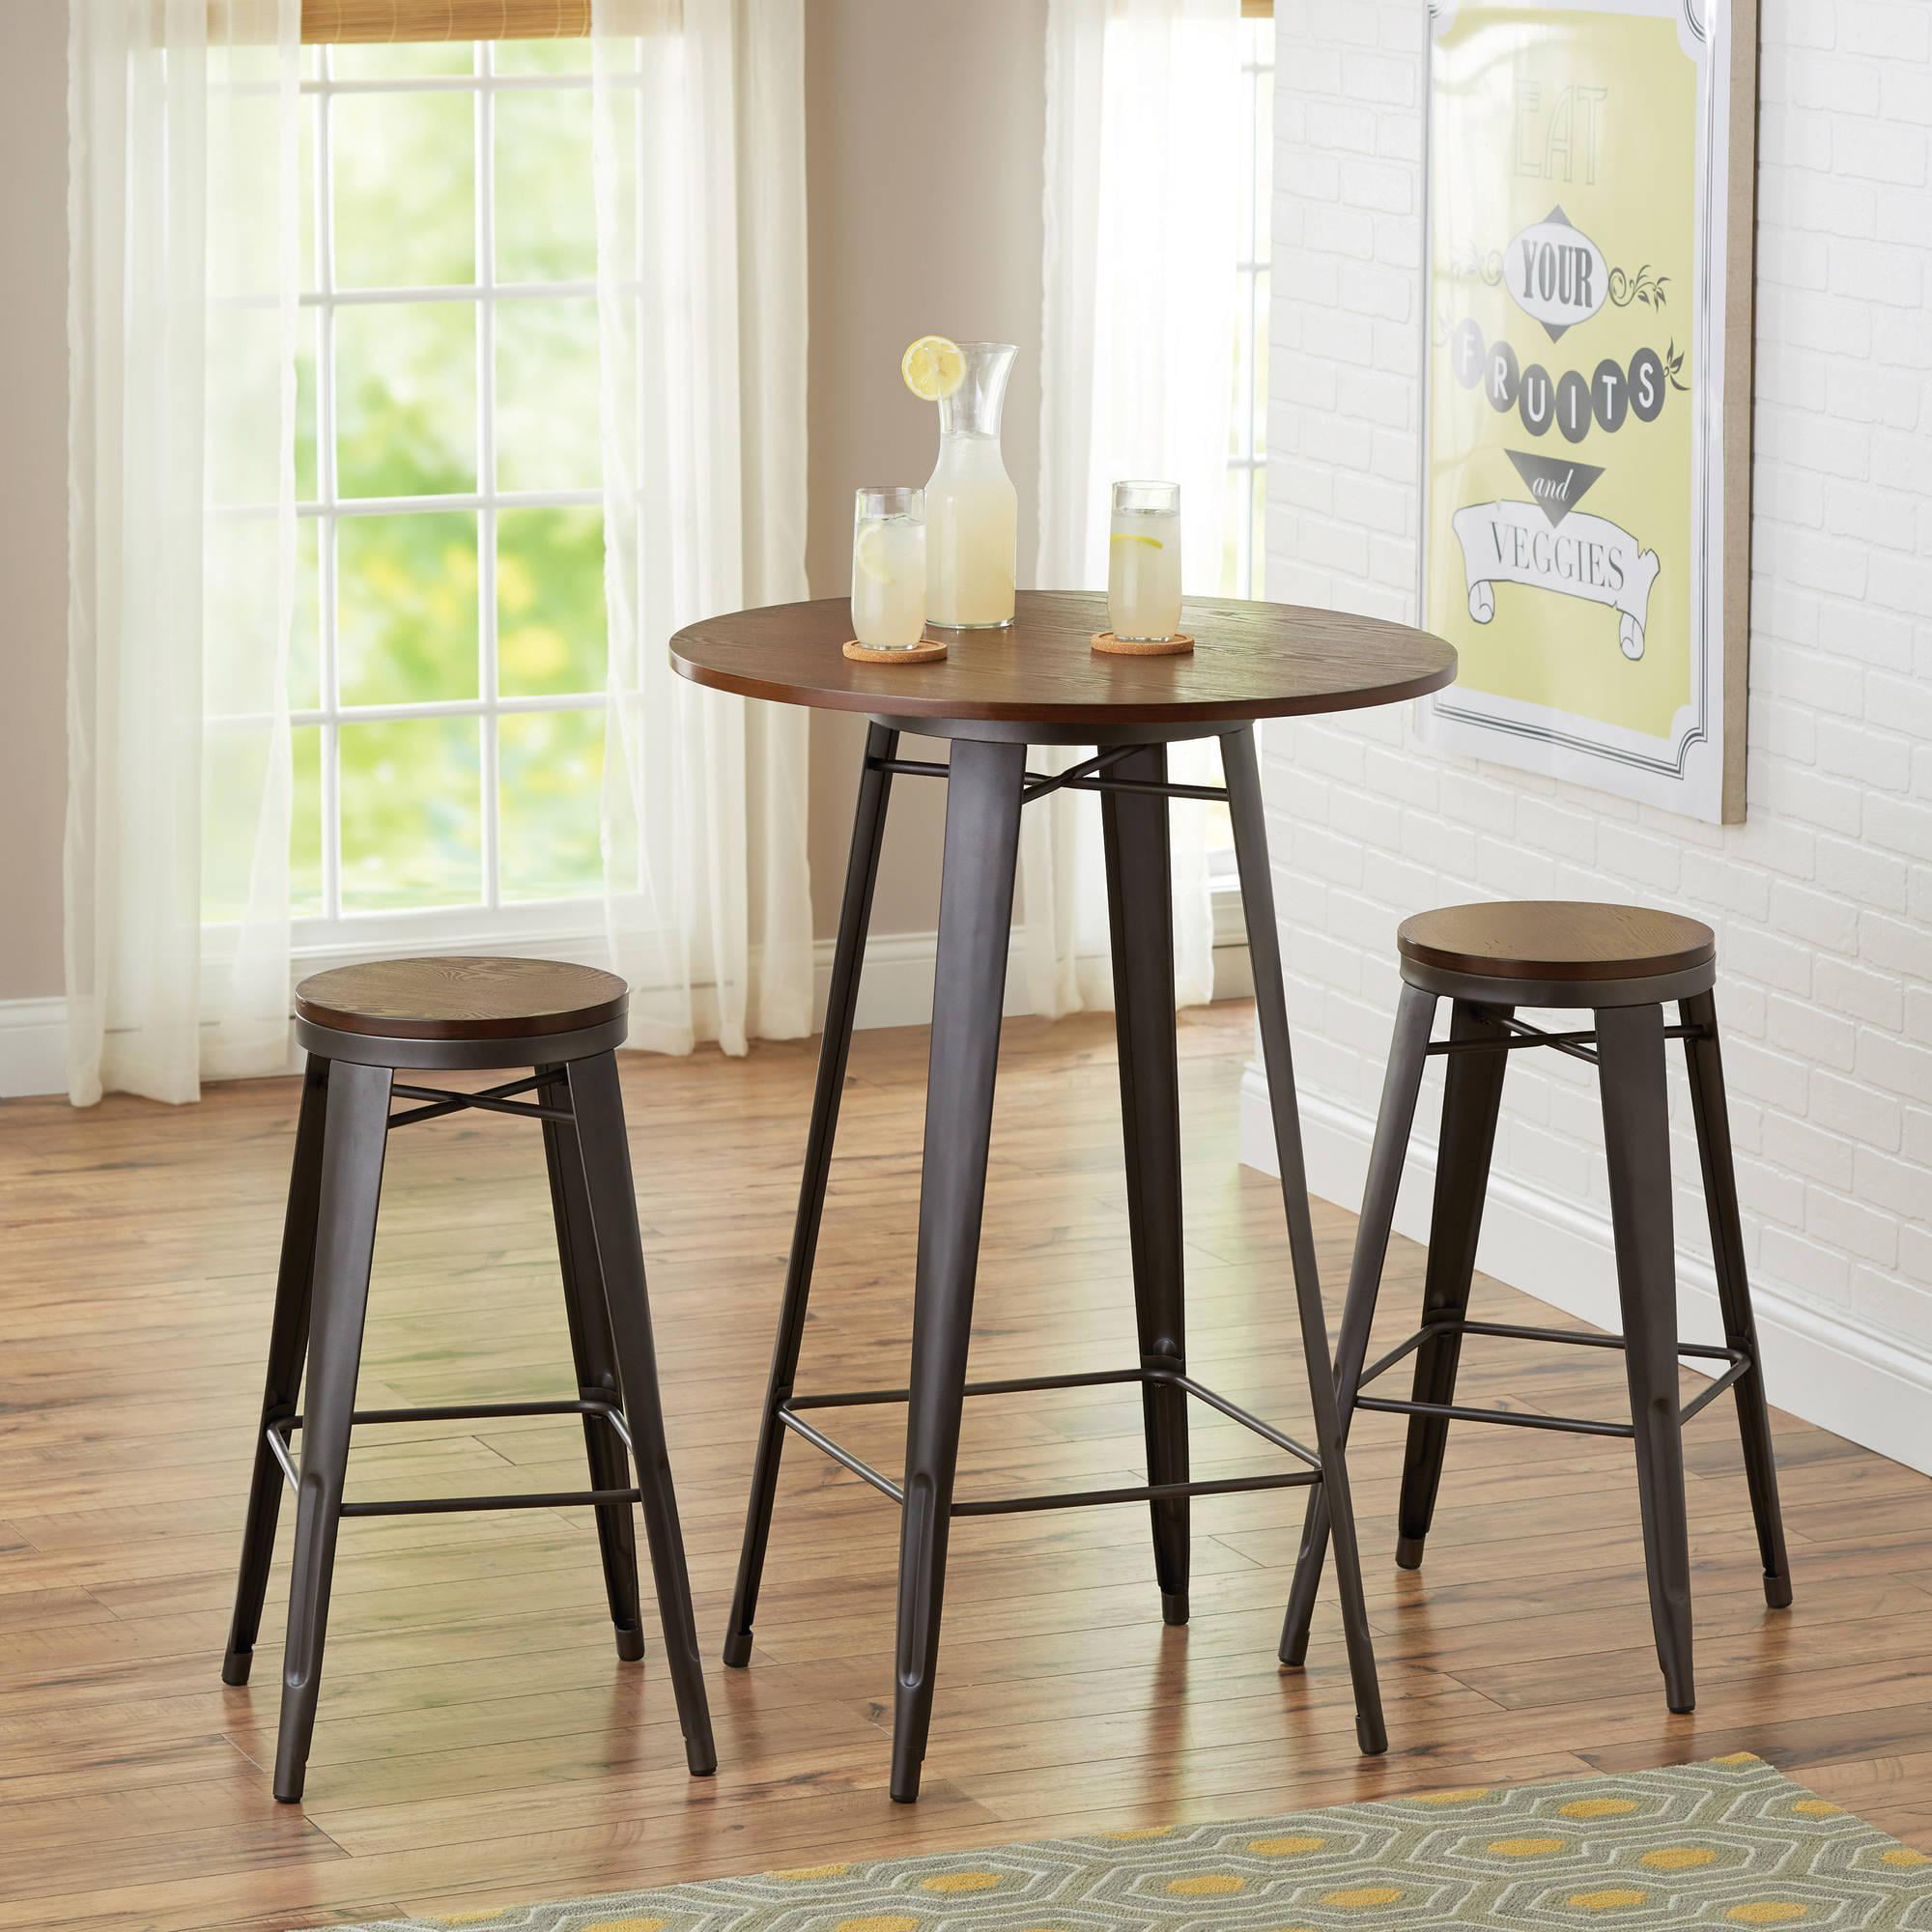 Good Better Homes And Gardens Harper 3 Piece Pub Set, Multiple Colors    Walmart.com